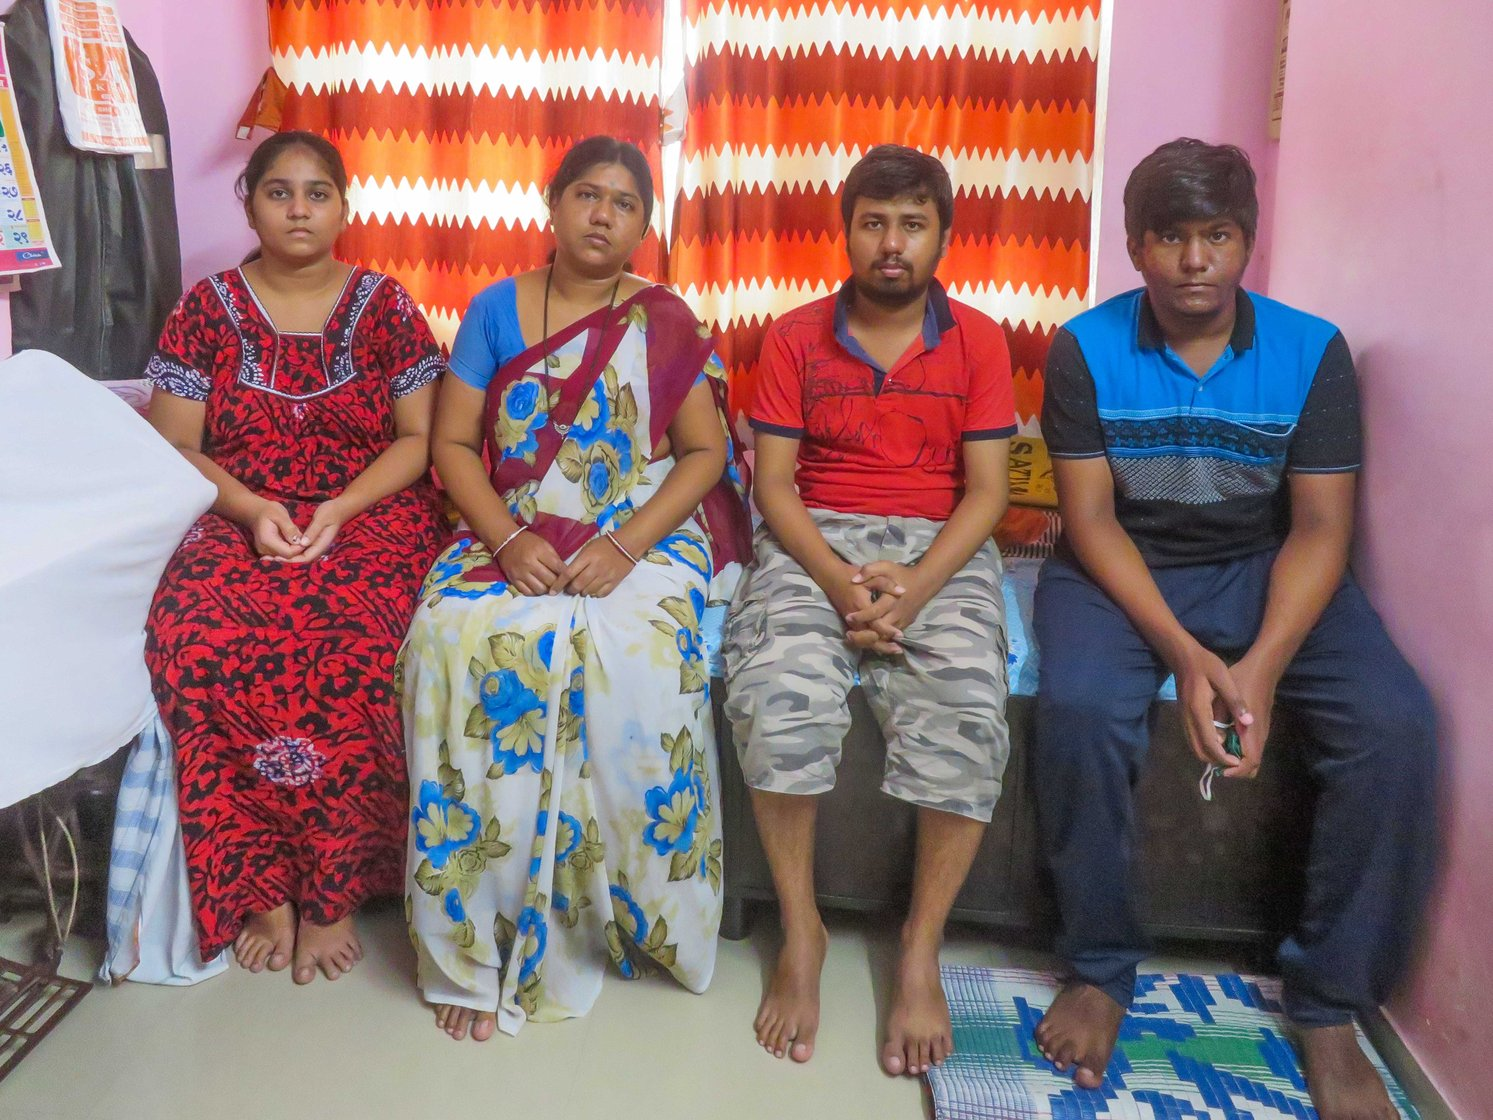 'If he [Ashok] was diagnosed in time, he would have been here', says Sunita, with her kids Manisha (left), Nikesh and Swapnil